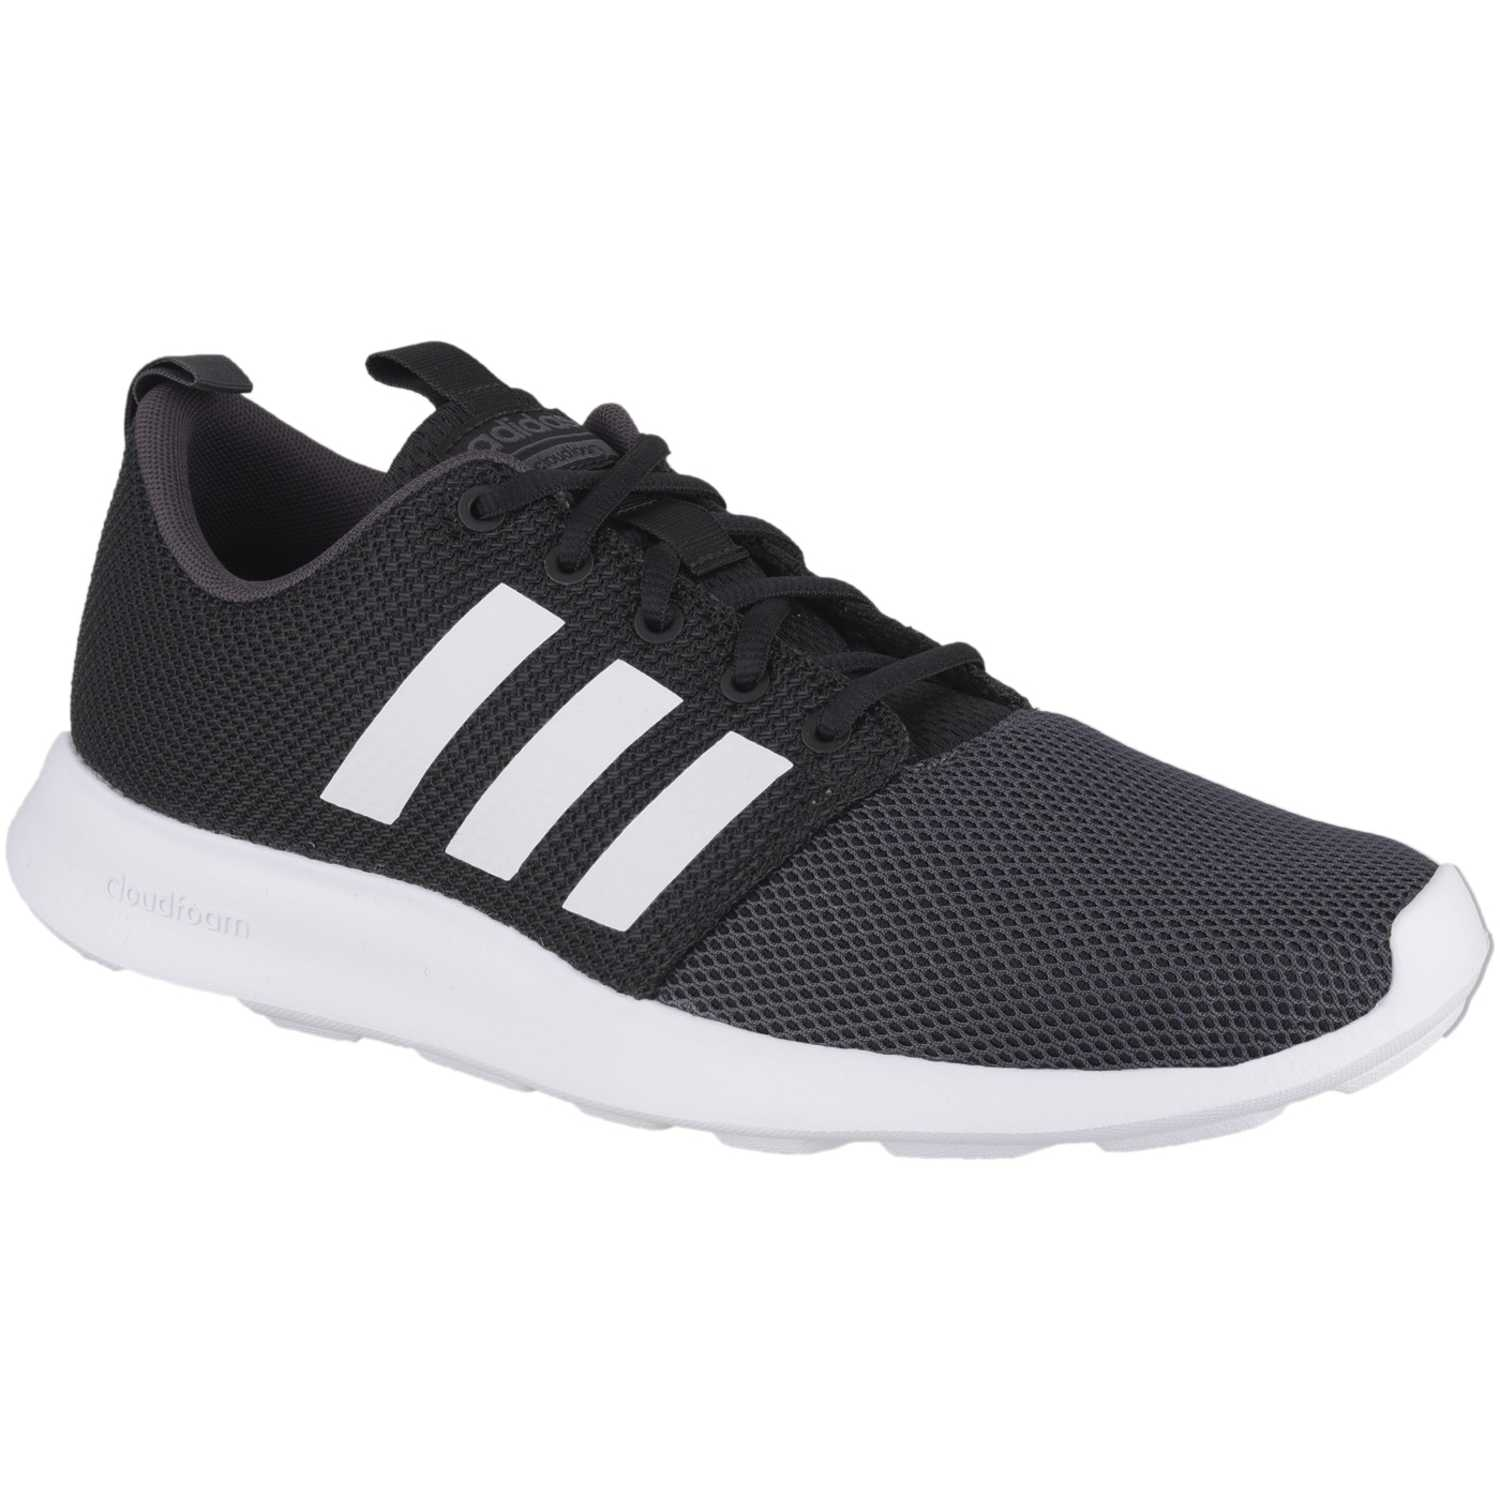 wholesale dealer a6990 88901 Zapatilla de Hombre adidas NEO Negro  blanco cf swift racer